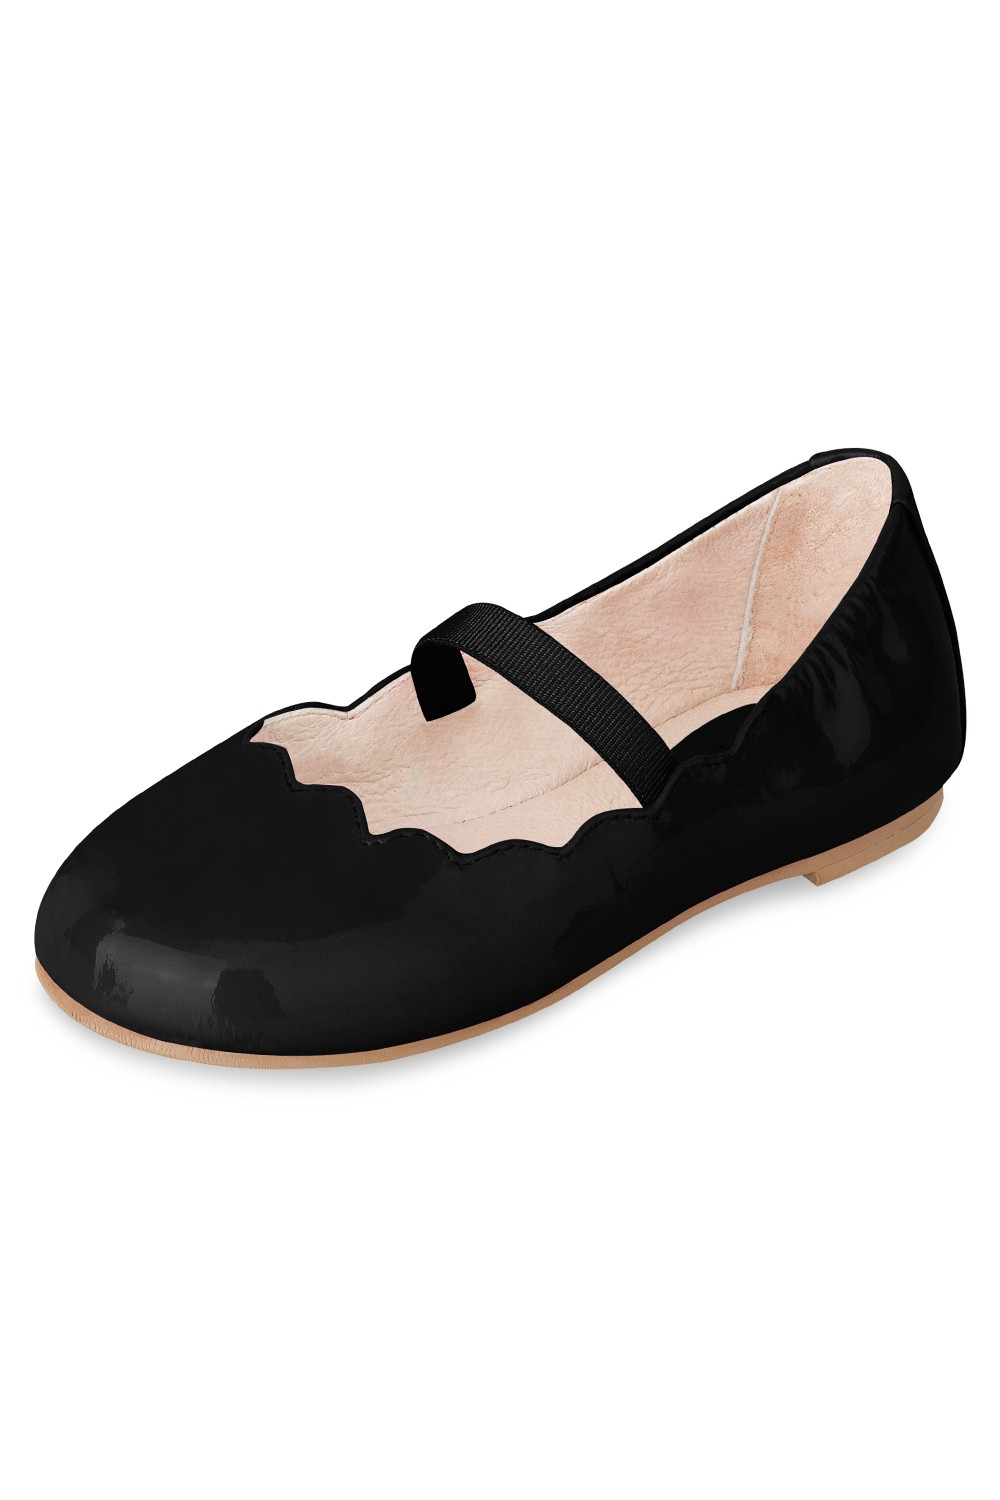 Scalloped Ballerina - Menina Pequena Toddlers Fashion Shoes